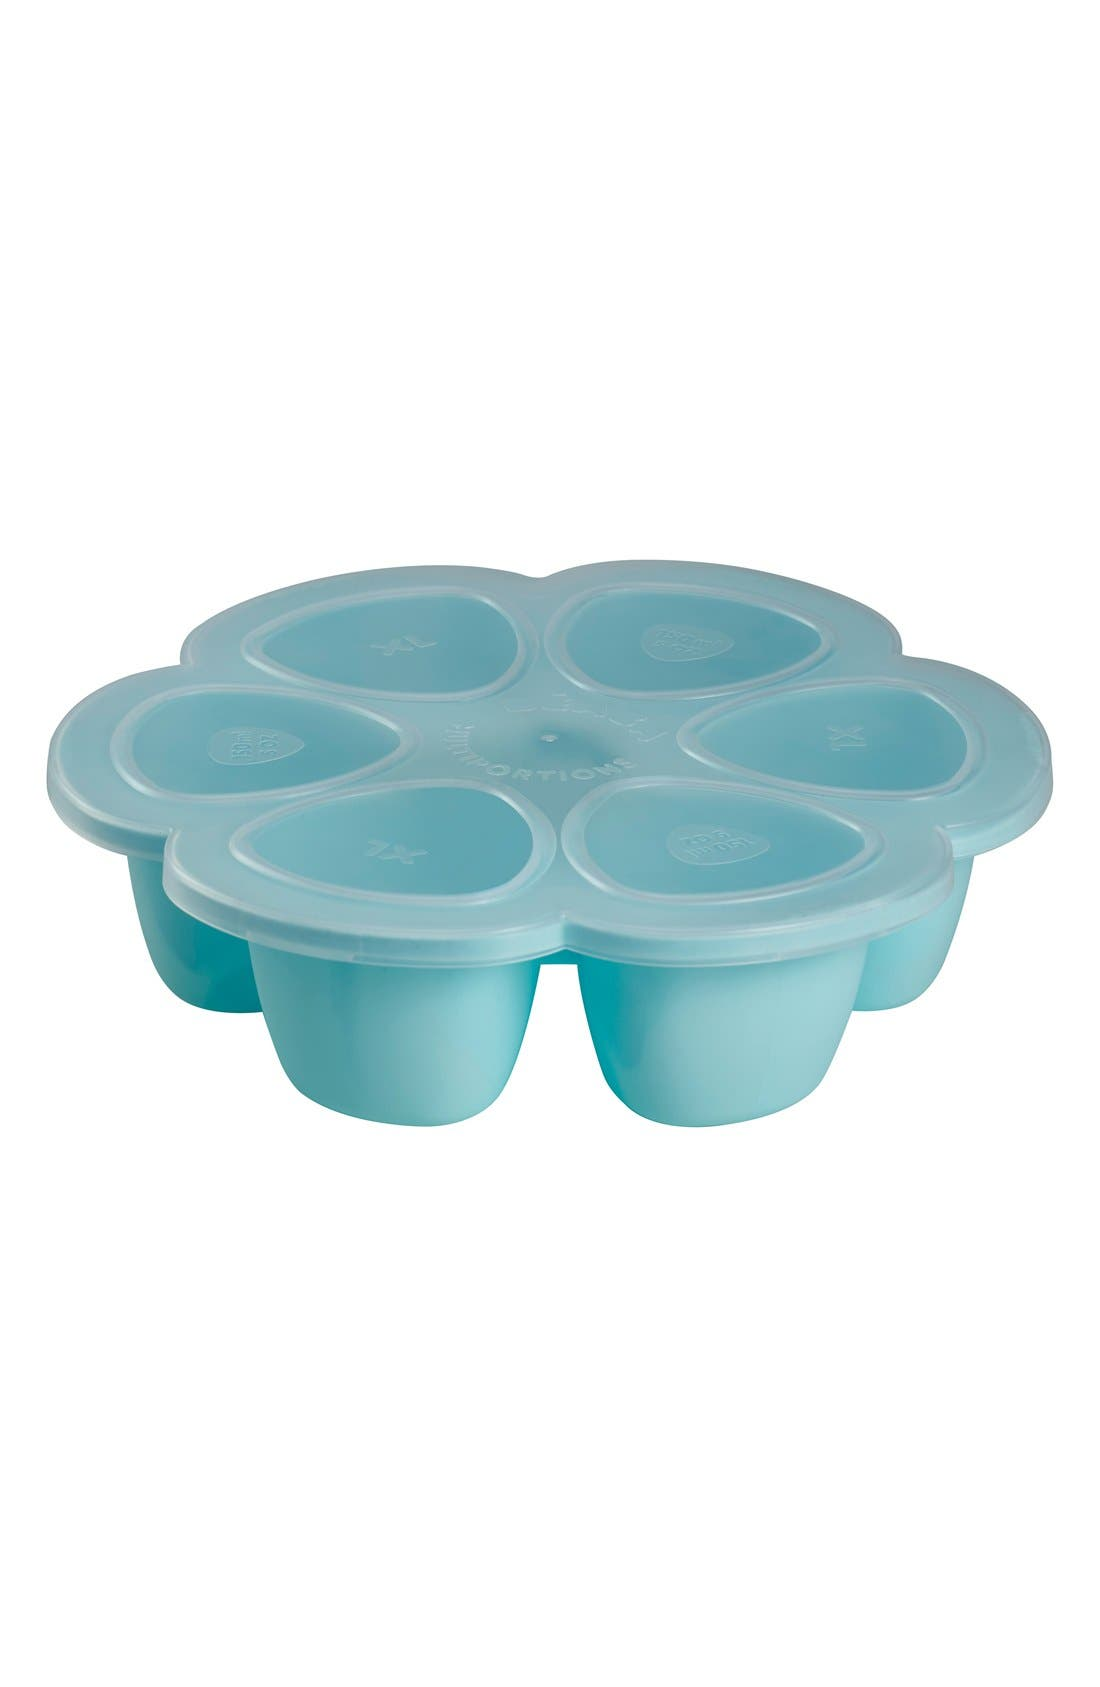 Multiportions<sup>™</sup> Silicone 3 oz. Food Cup Tray,                             Alternate thumbnail 3, color,                             SKY